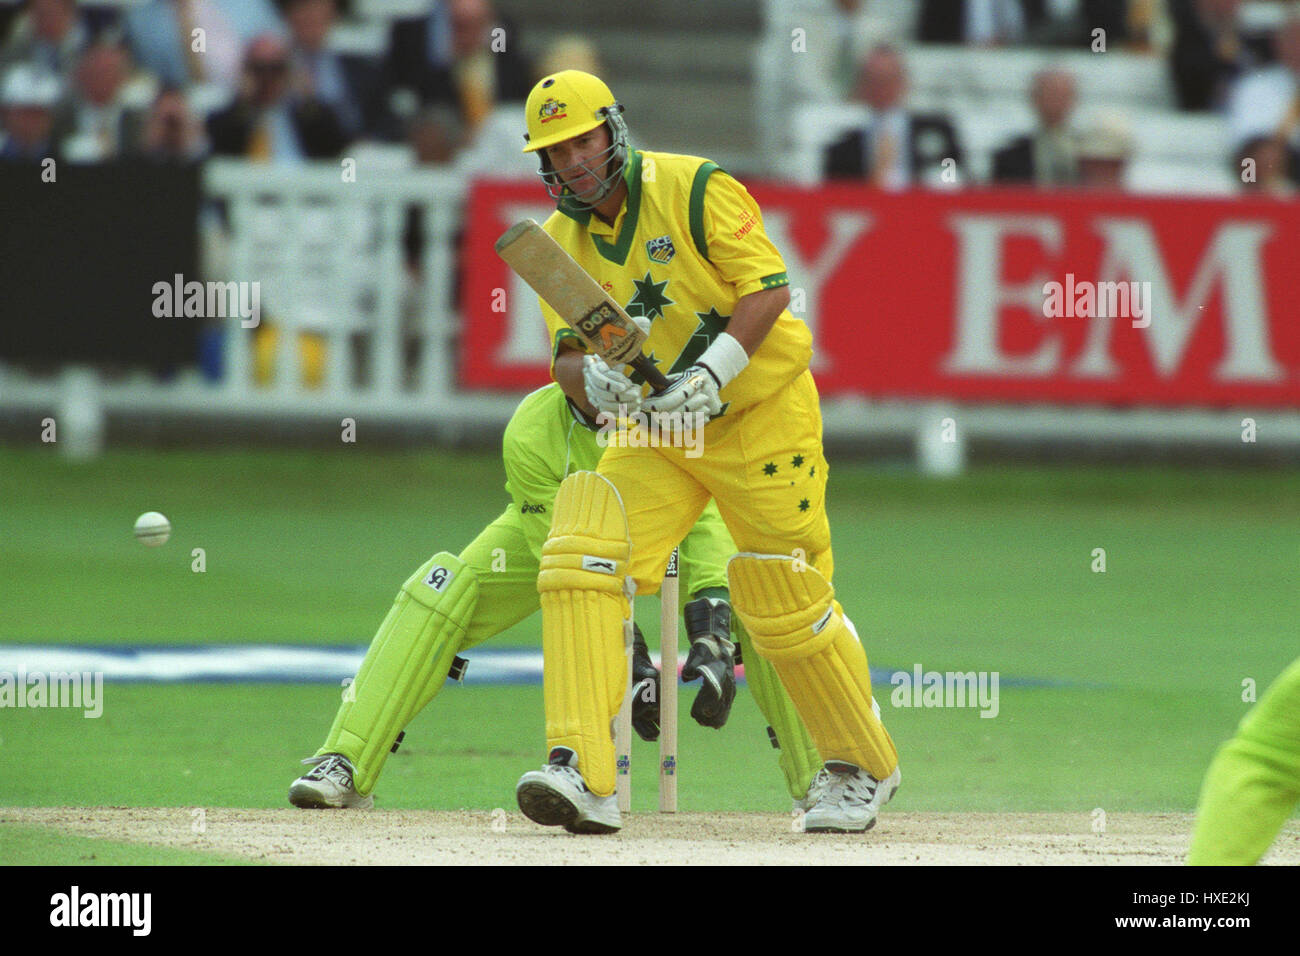 MARK WAUGH ON HIS WAY TO 37 PAKISTAN V AUSTRALIA 20 June 1999 - Stock Image